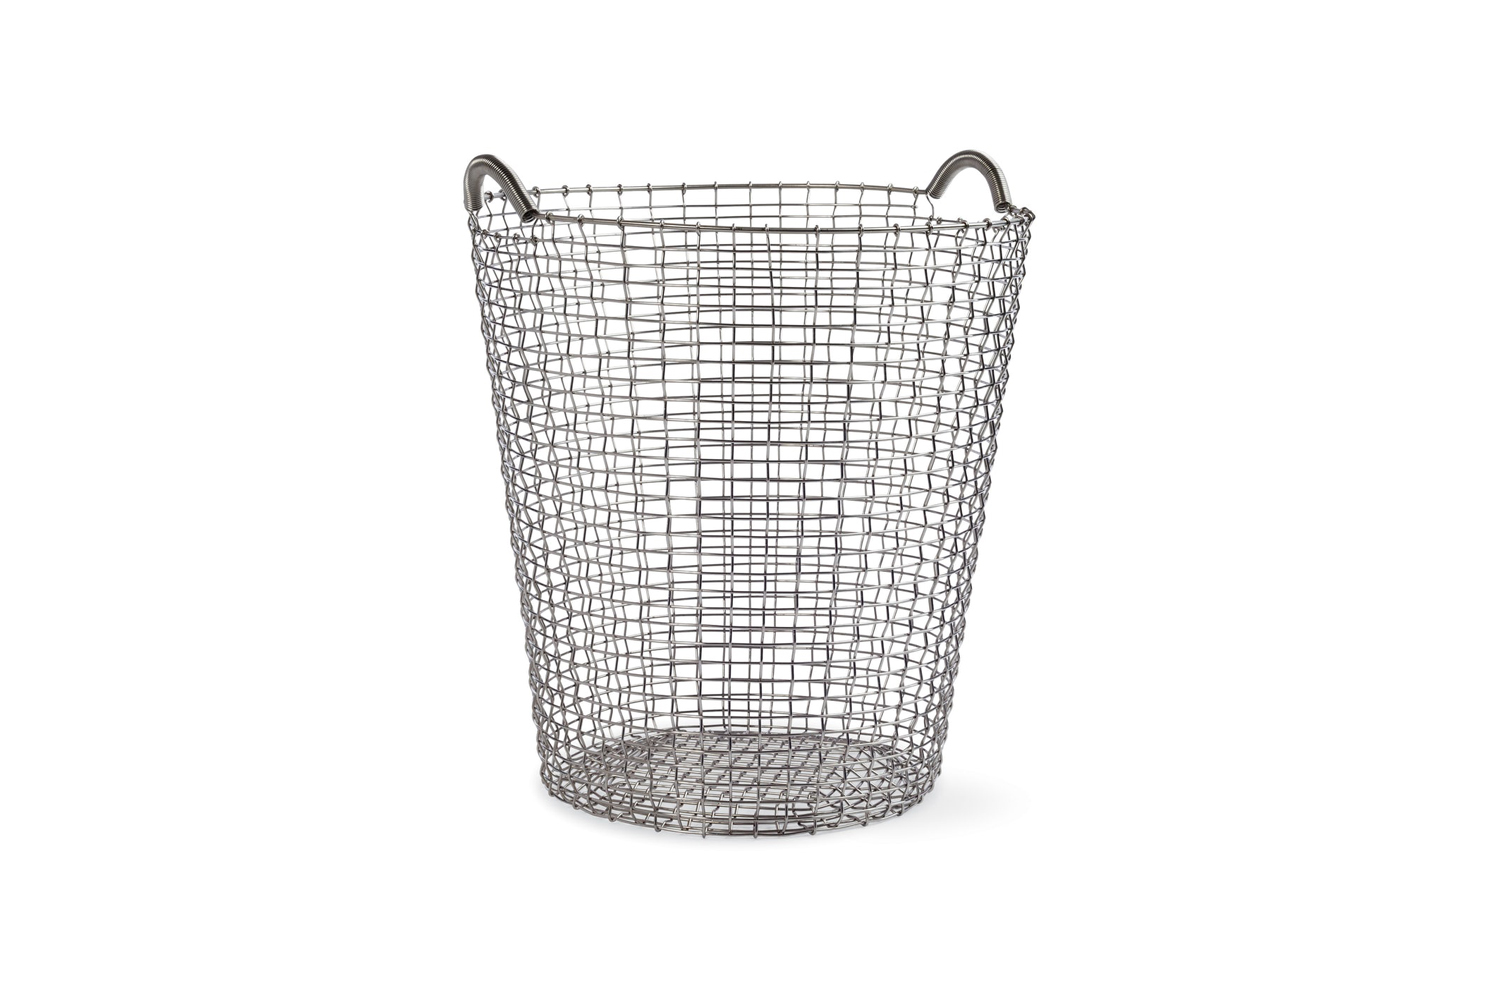 The weighty Korbo Handmade Wire Basket is made from heavy gauge acid-proof stainless steel in Sweden; $5 for the oversized 80 size at Design Within Reach.